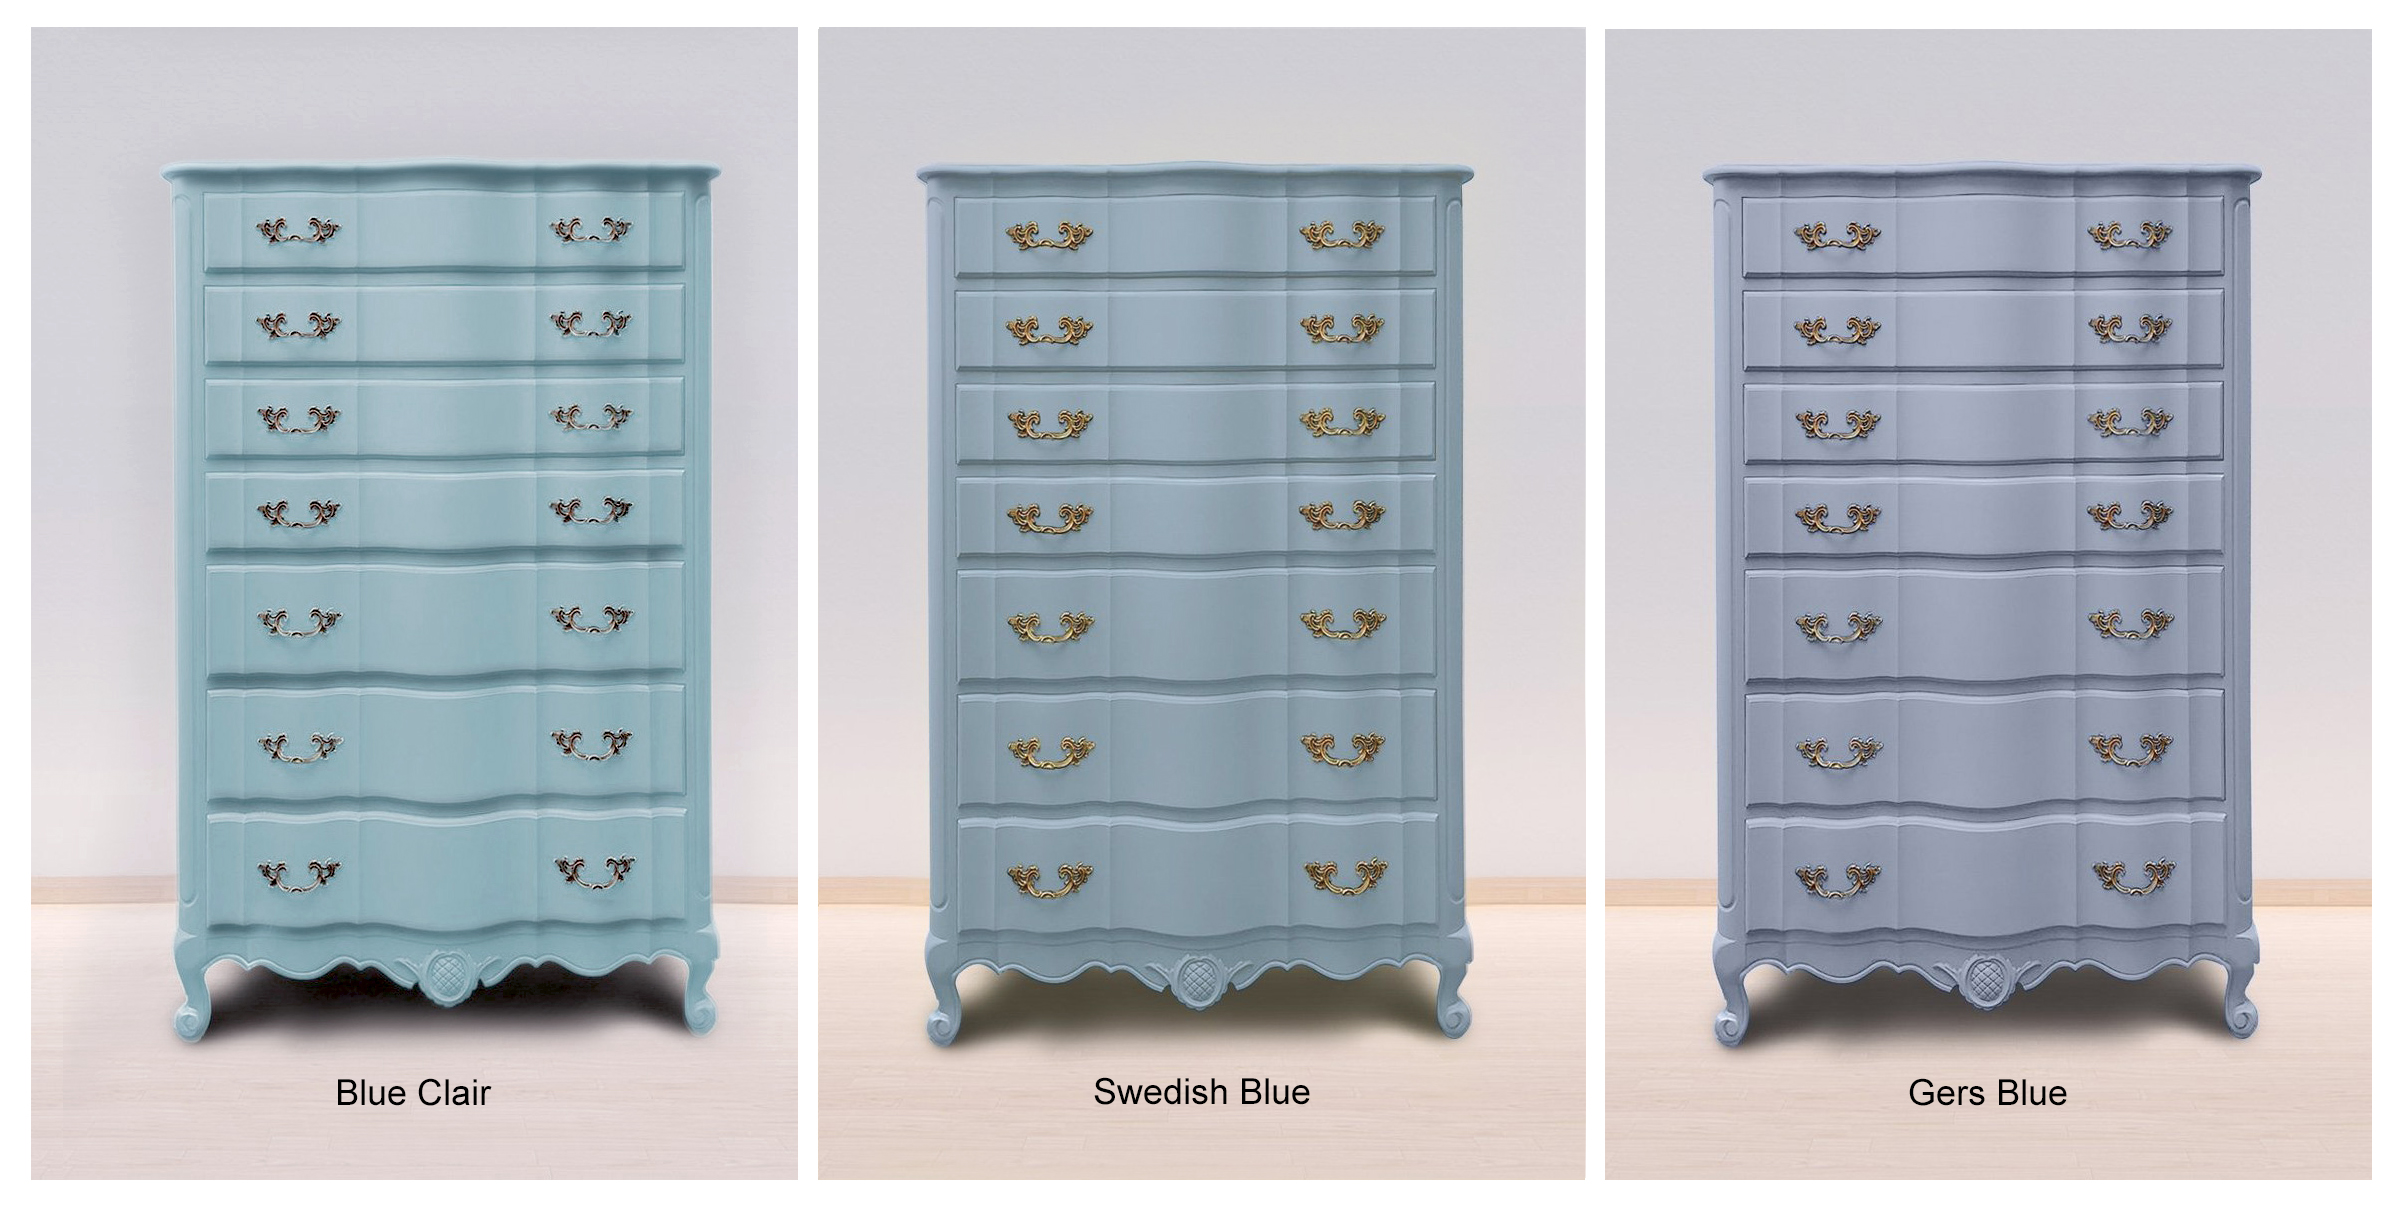 Blue Clair, Swedish Blue & Gers Bleu